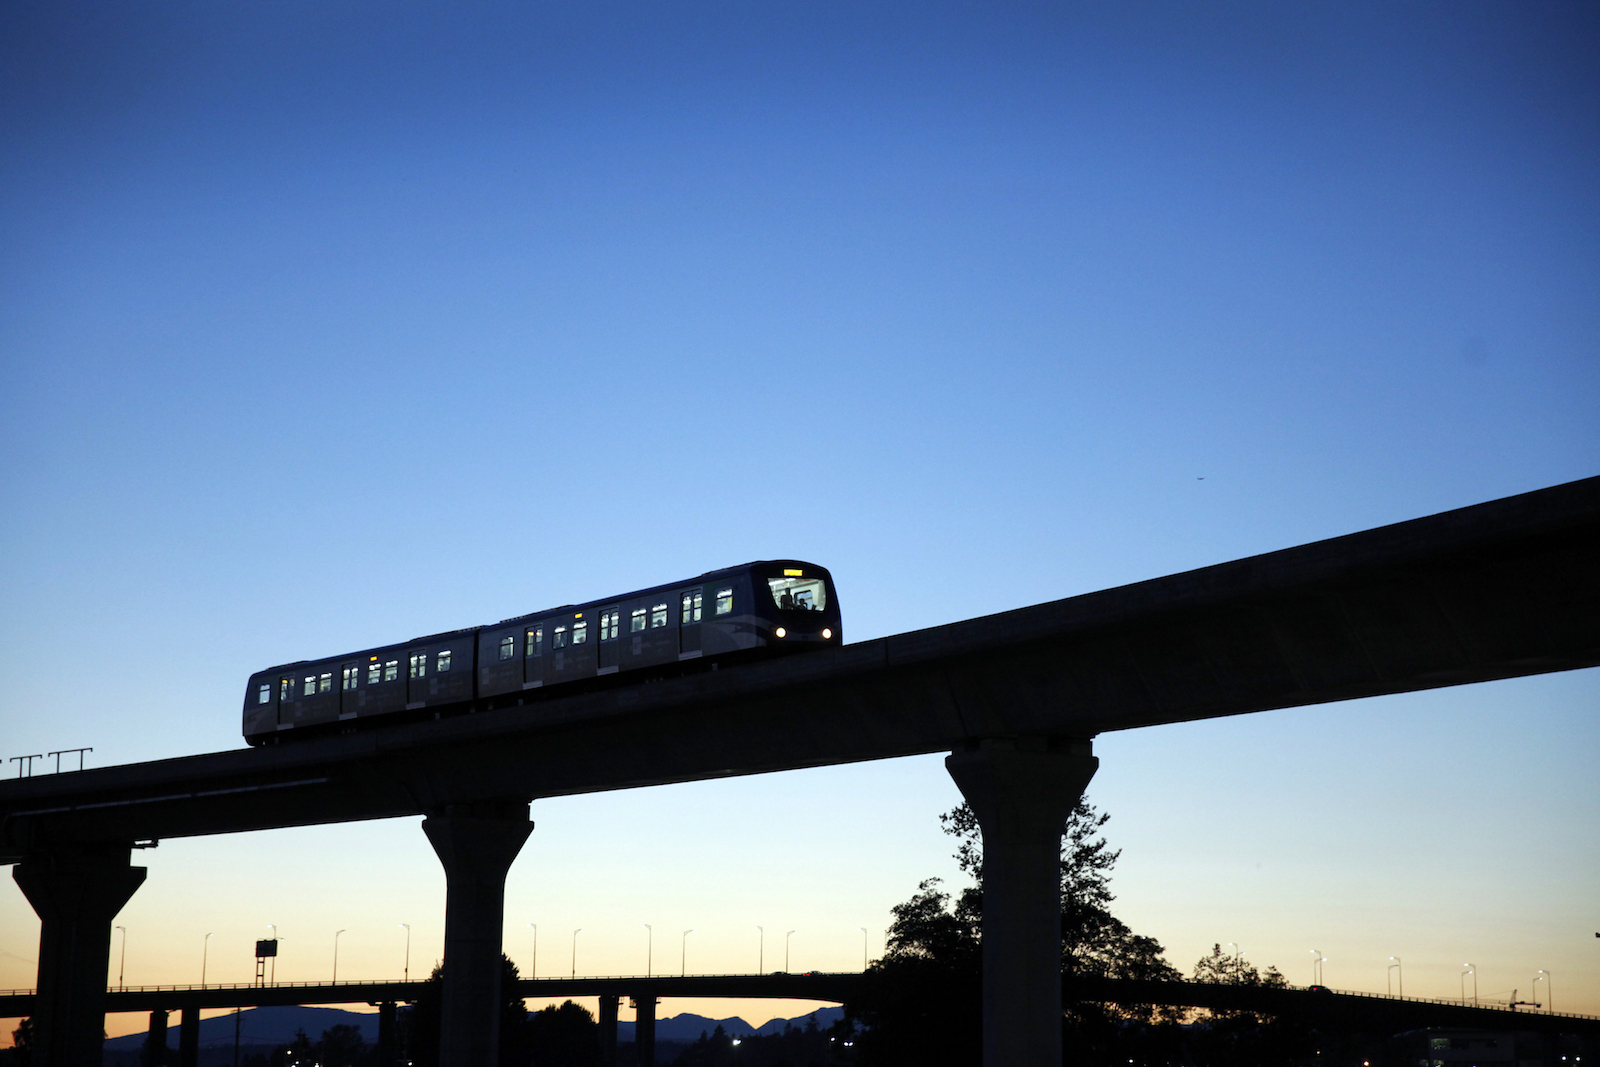 A lightrail train on an elevated road silhouetted against a darkened sky